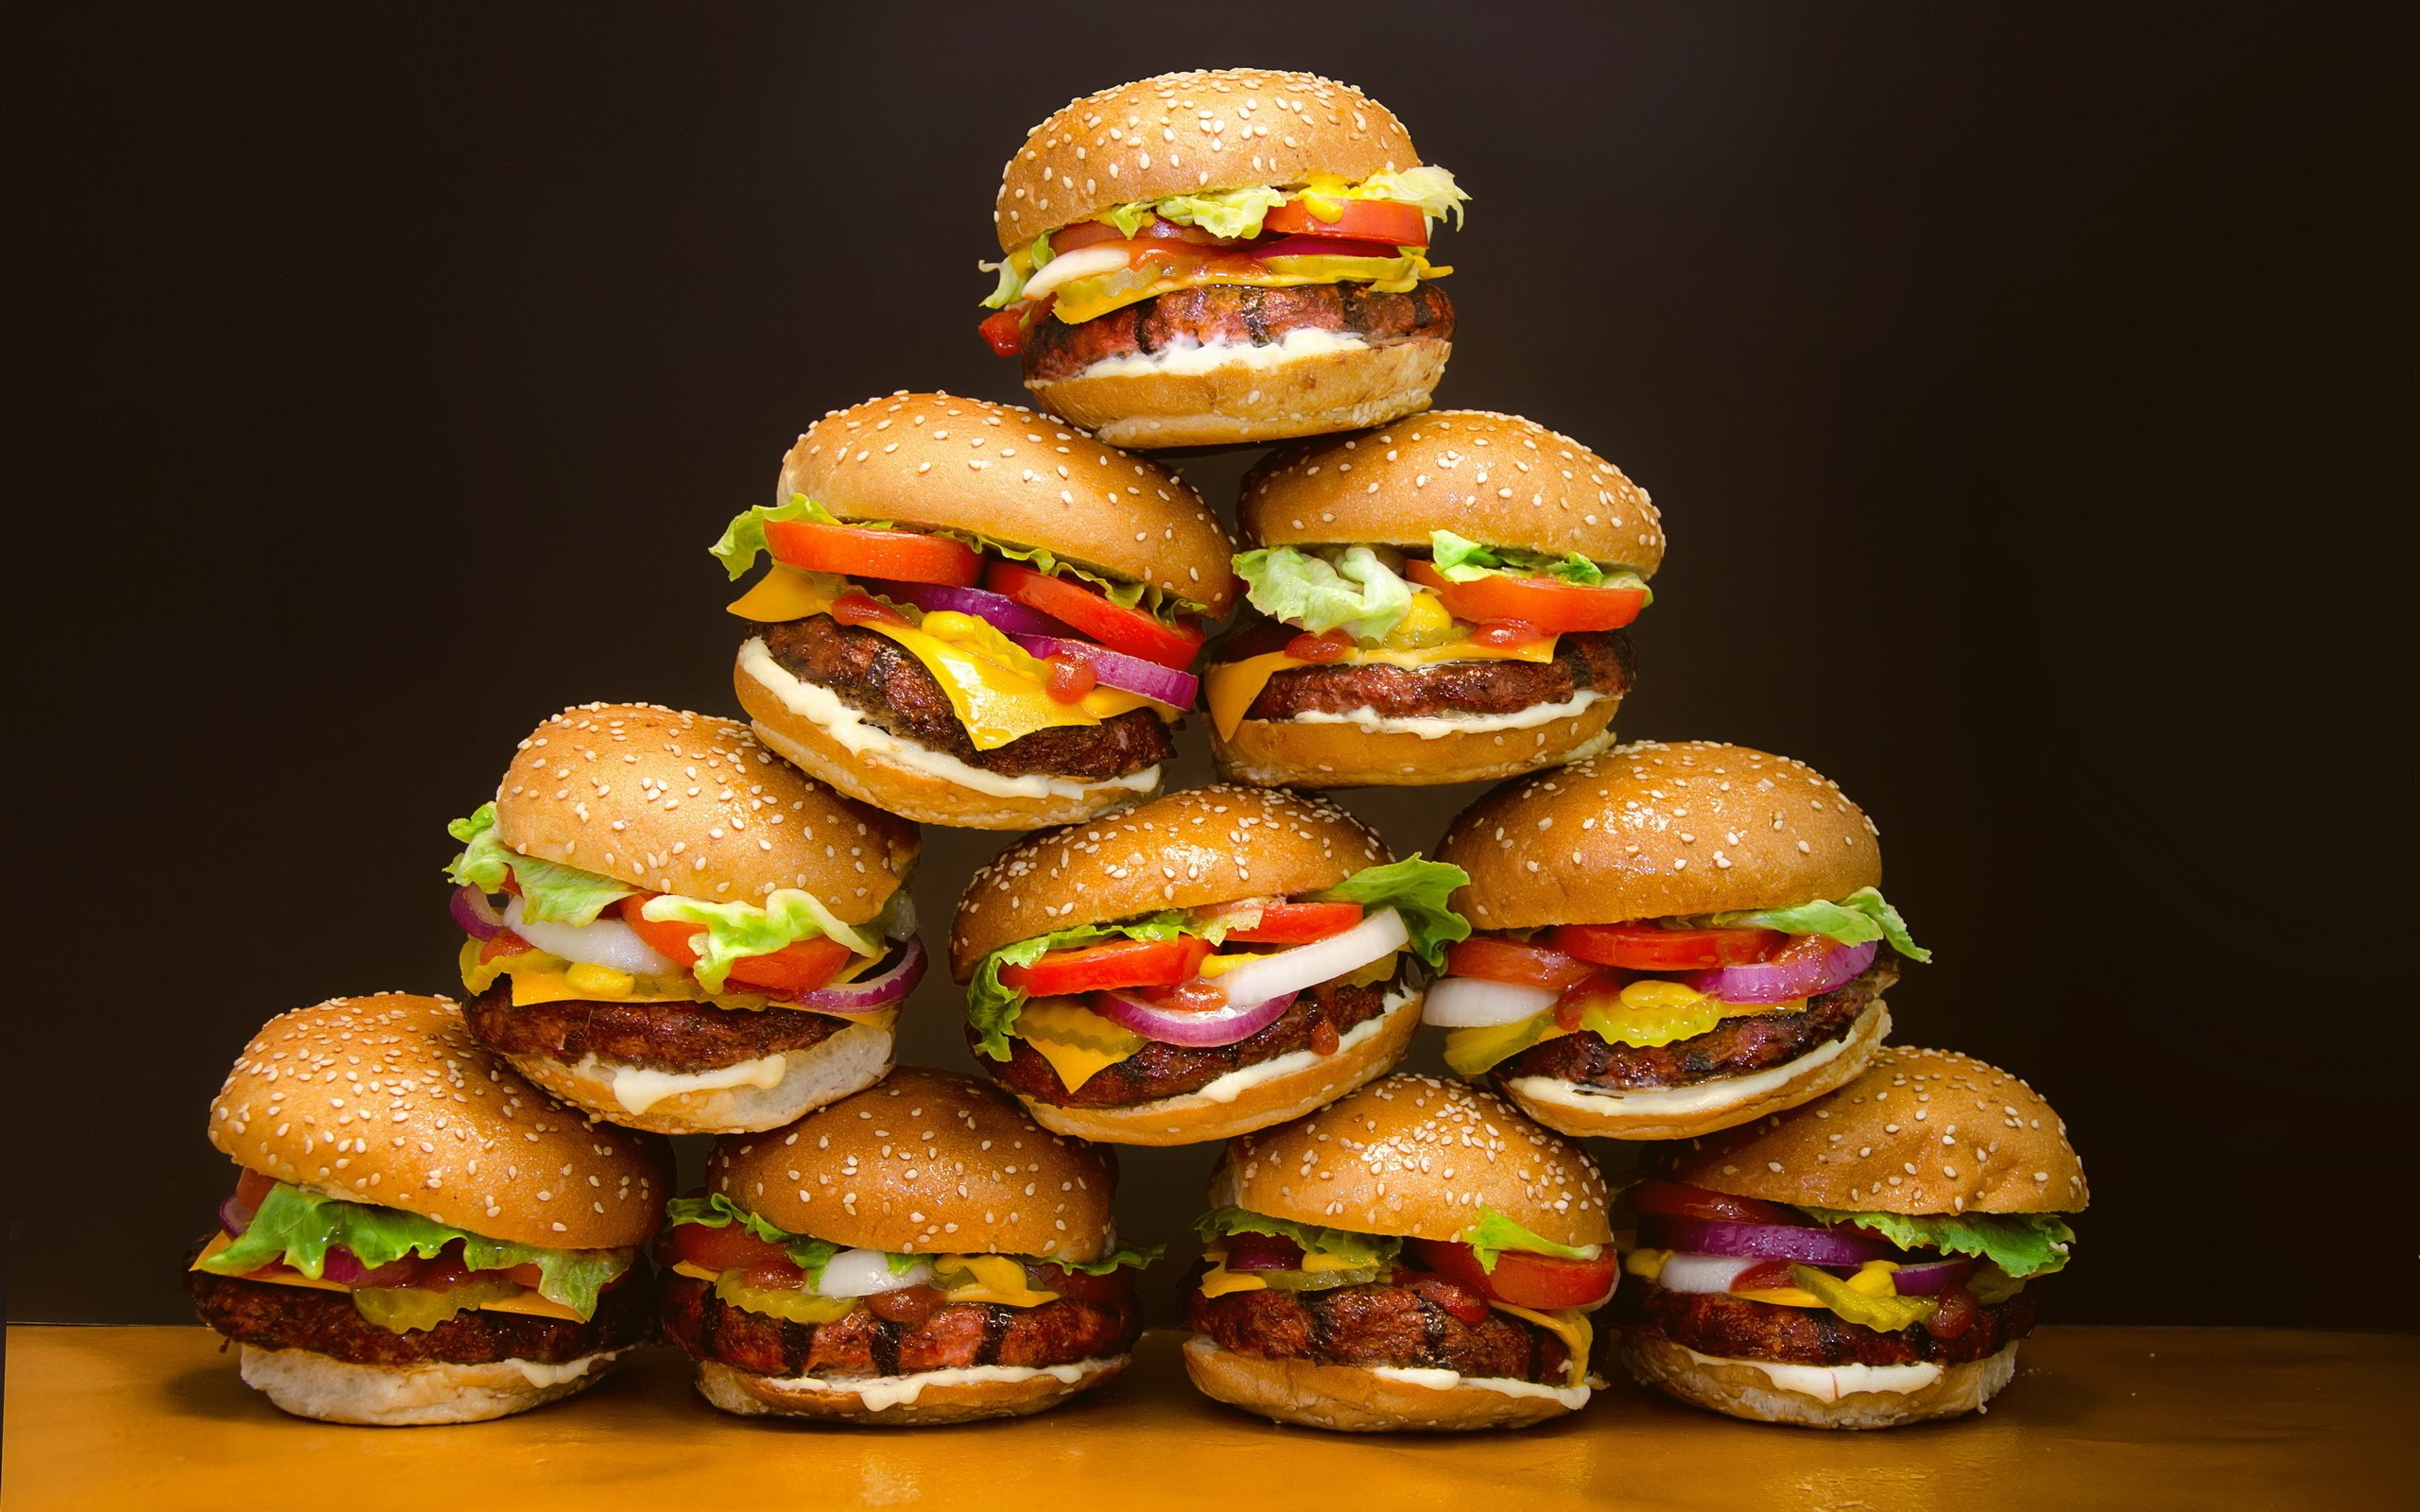 fast food burgers background wallpaper 68910